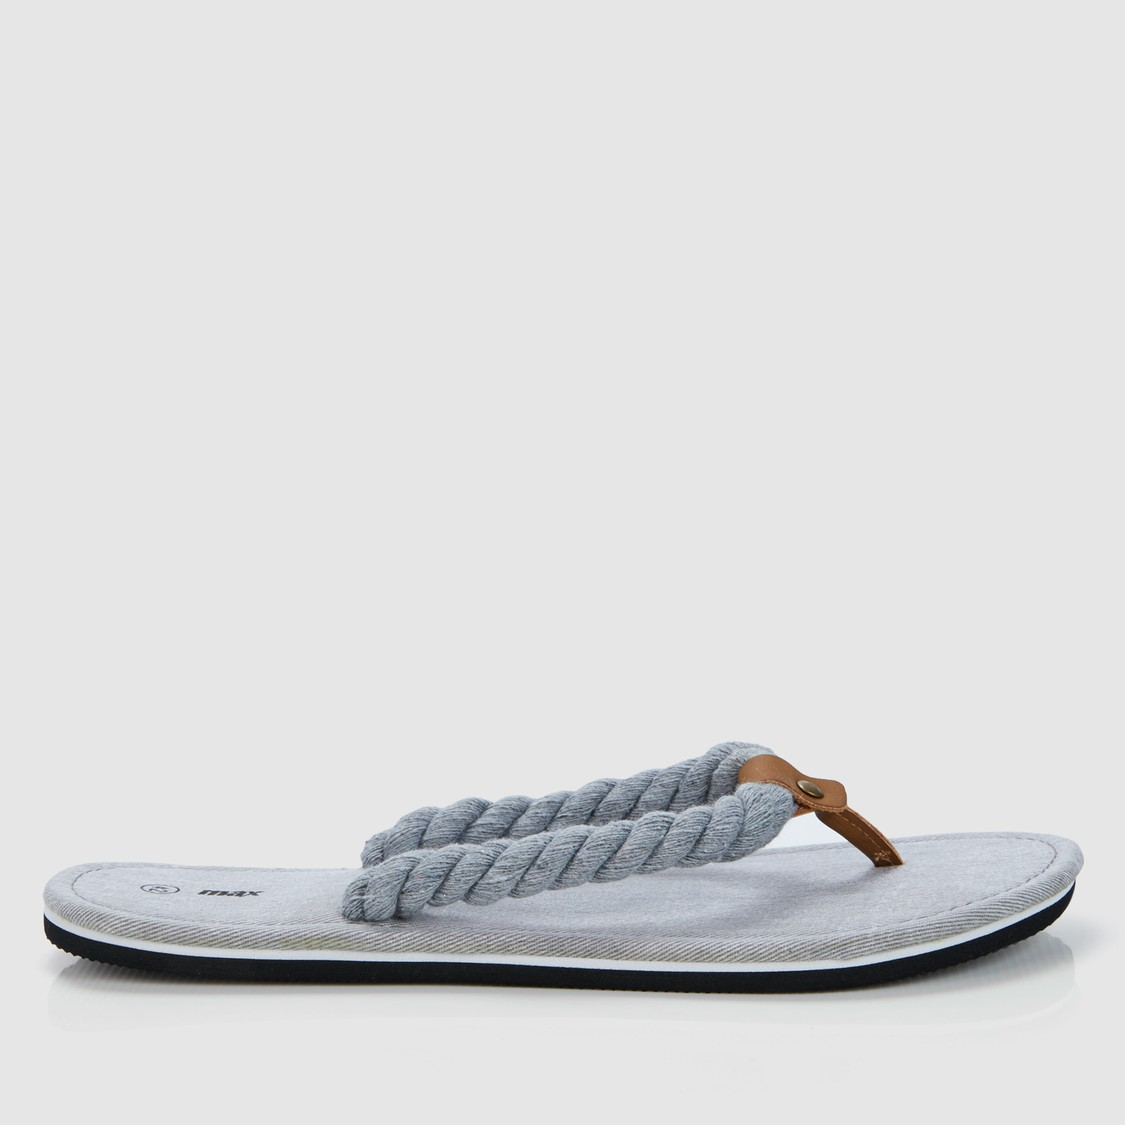 Textured Flip Flops with Braided Straps